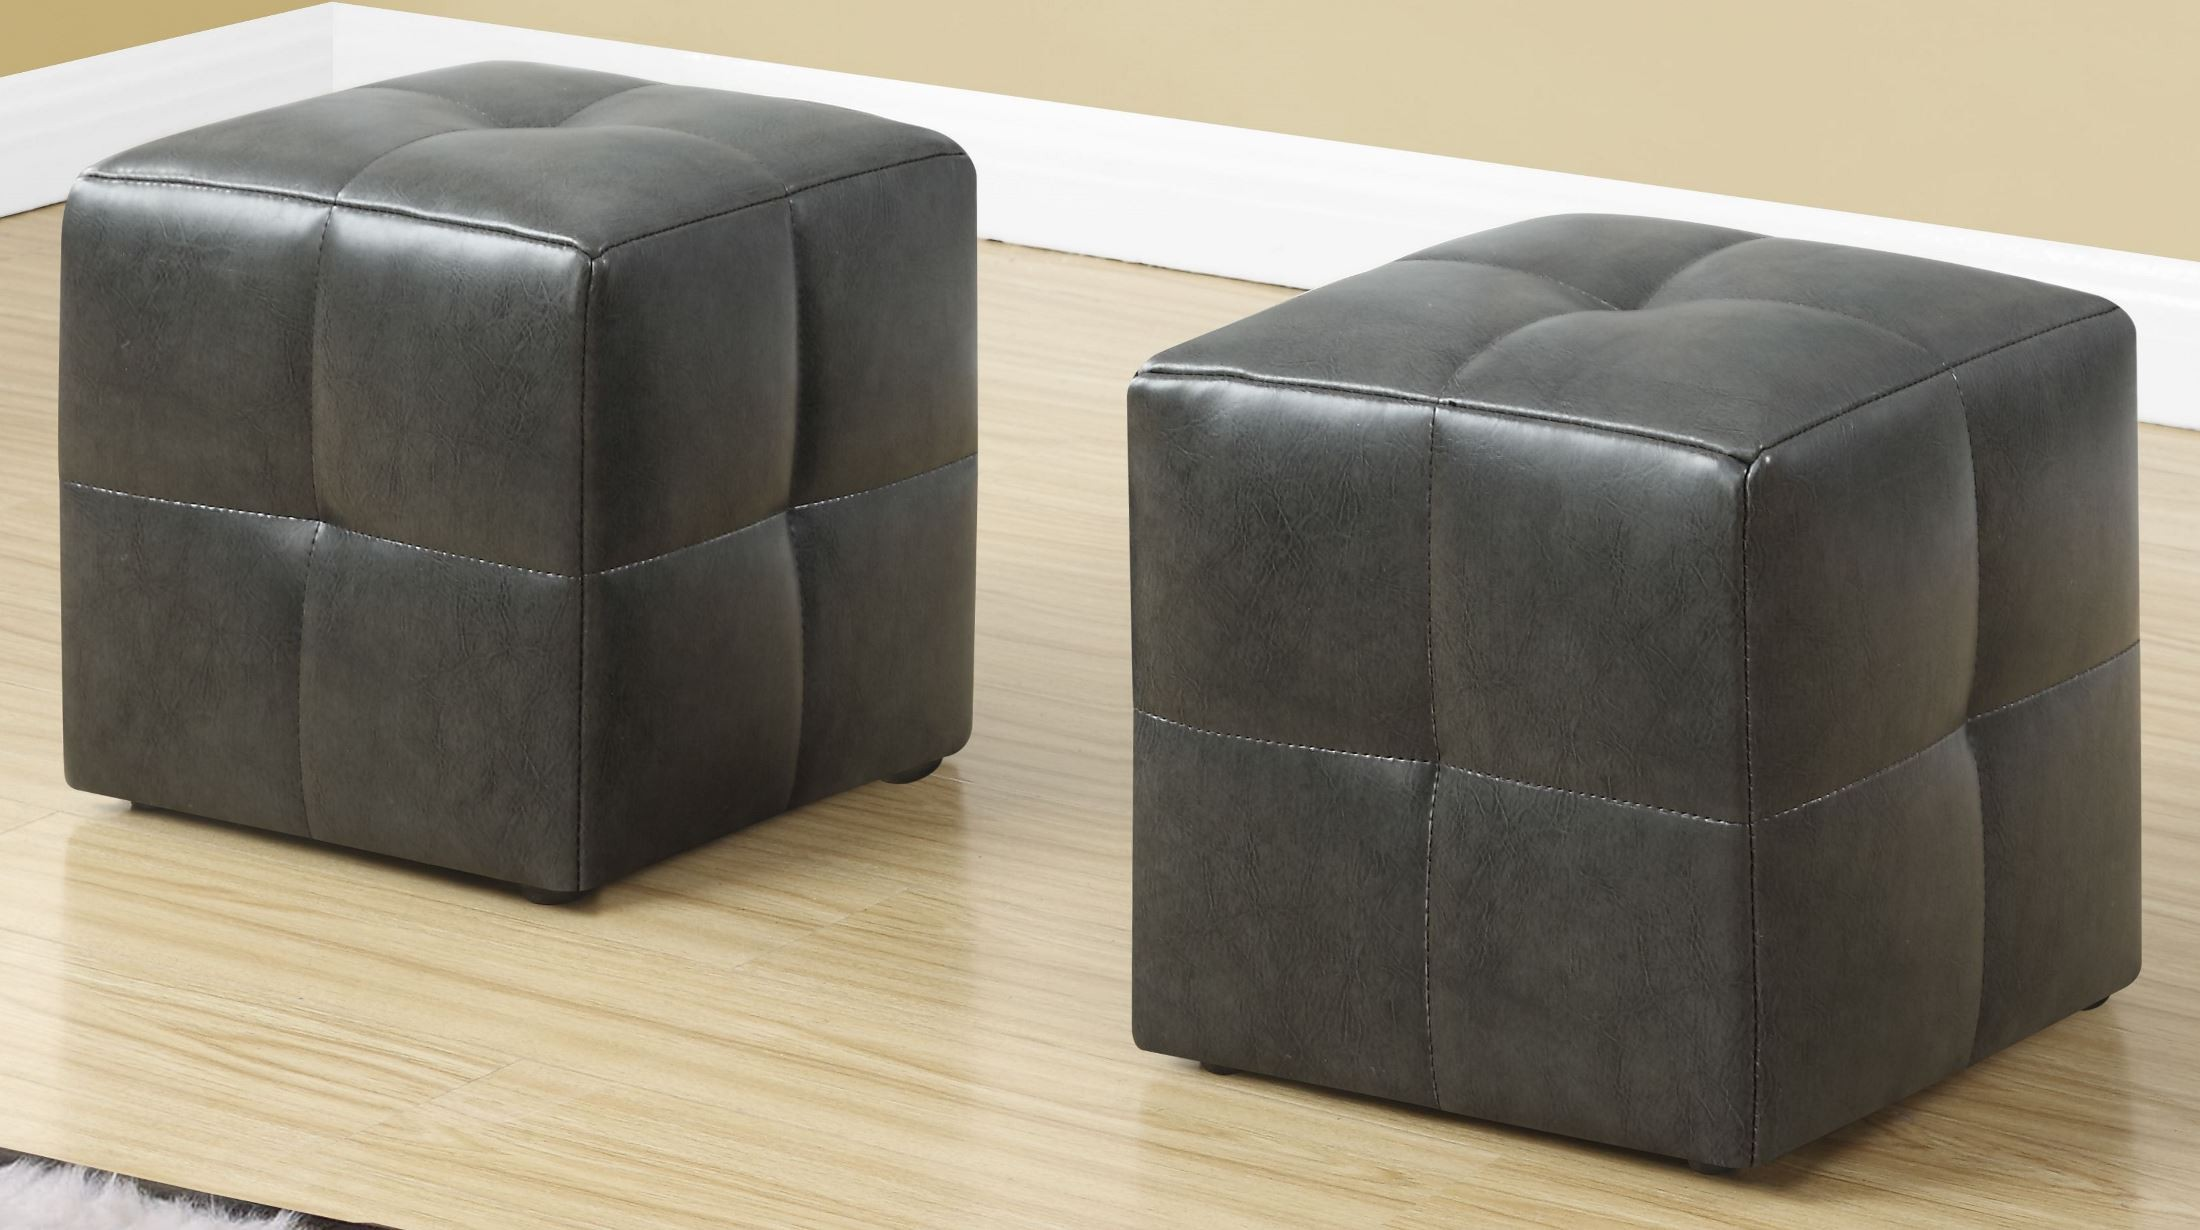 Leather Ottomans Set Of Three ~ Charcoal grey leather juvenile ottoman set of monarch